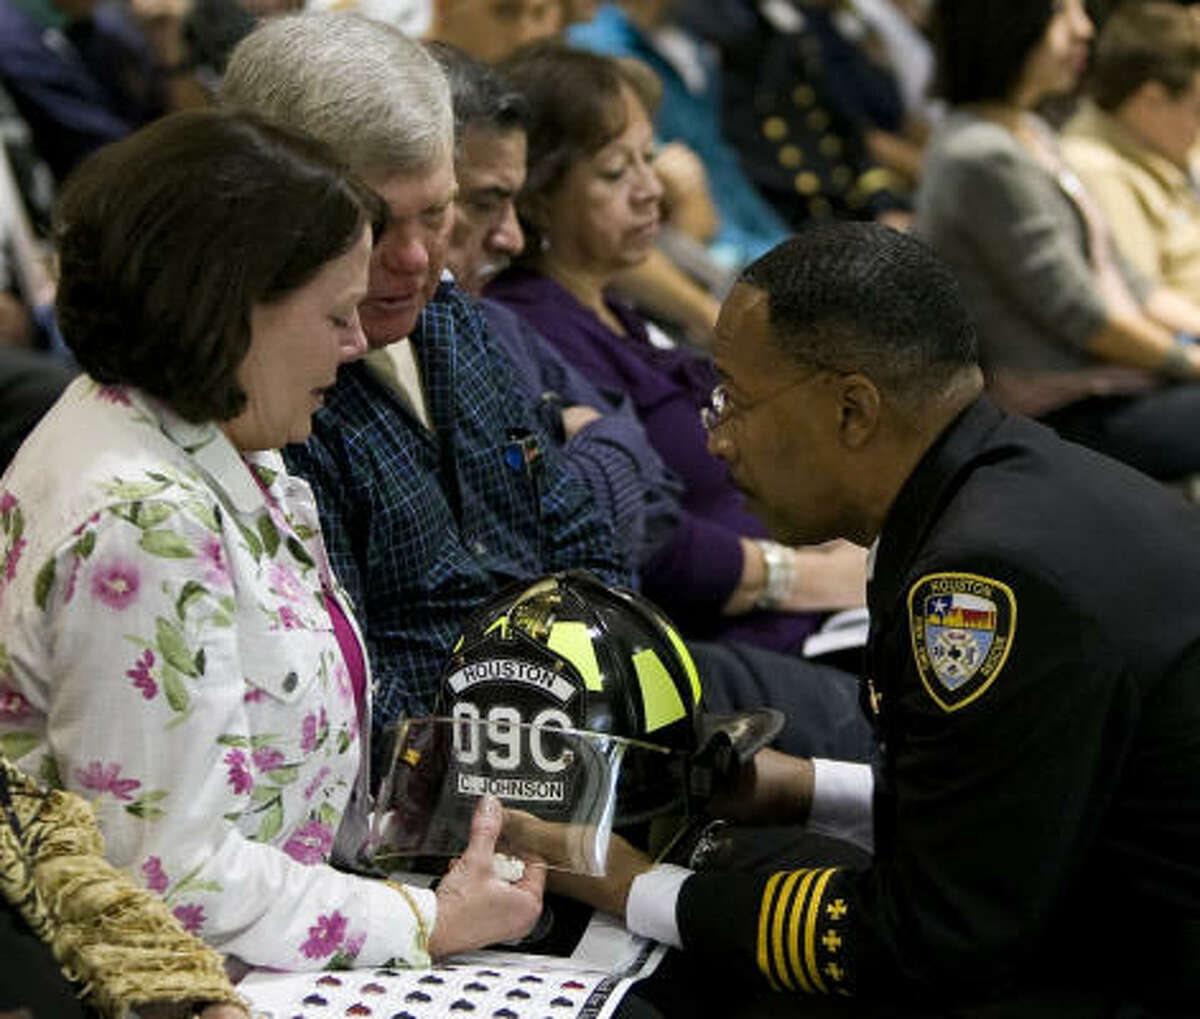 Candice Johnson, front, and her husband Clifford Mike Johnson, parents of fallen HFD cadet Cohnway Johnson, are presented with their son's firefighting helmet from HFD Chief Rick Flanagan during The Houston Fire Department Memorial Ceremony. Cohnway Johnson died in May of 2009 of hyperthermia and dehydration.